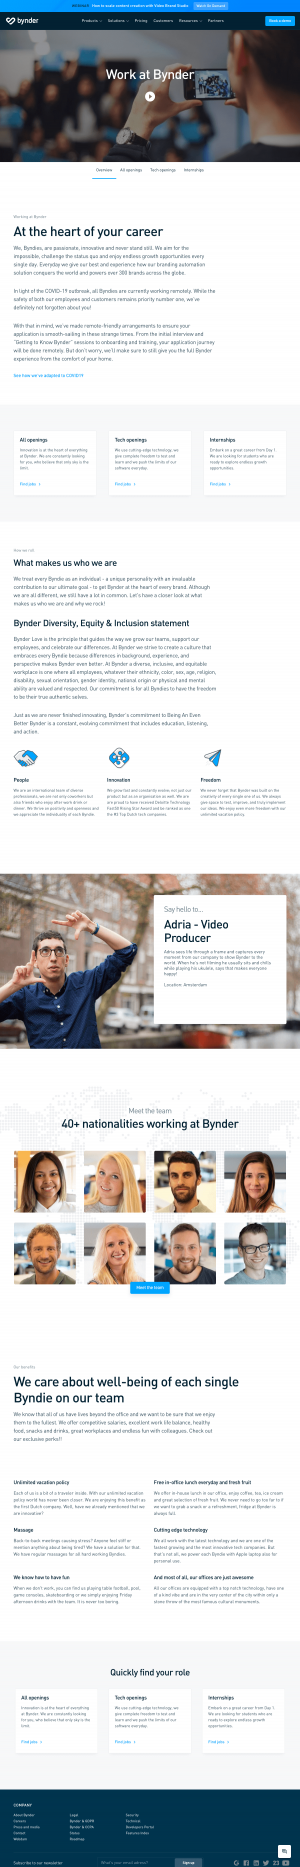 Bynder – Career page